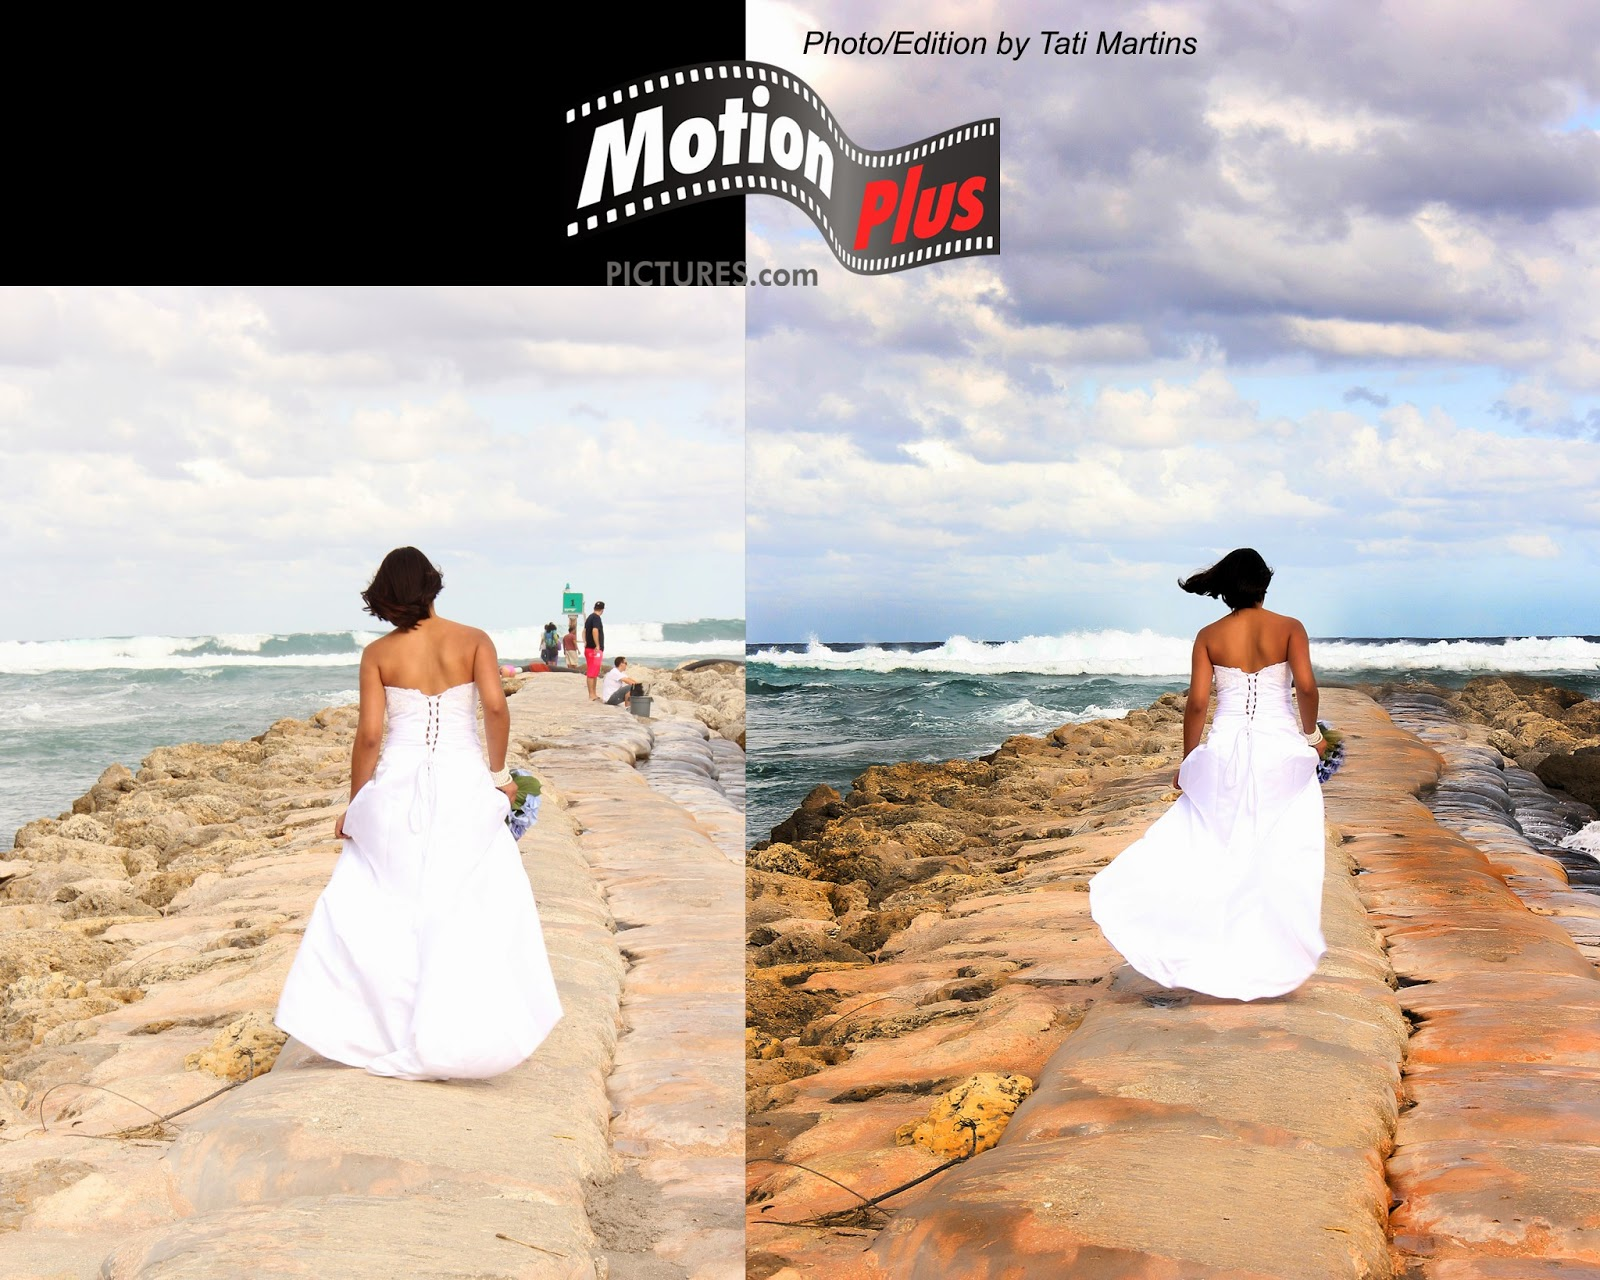 Photoshop Ideas Before And After  - Wedding At The Beach Photoshop Ideas By Tati Martins Motionpluspictures